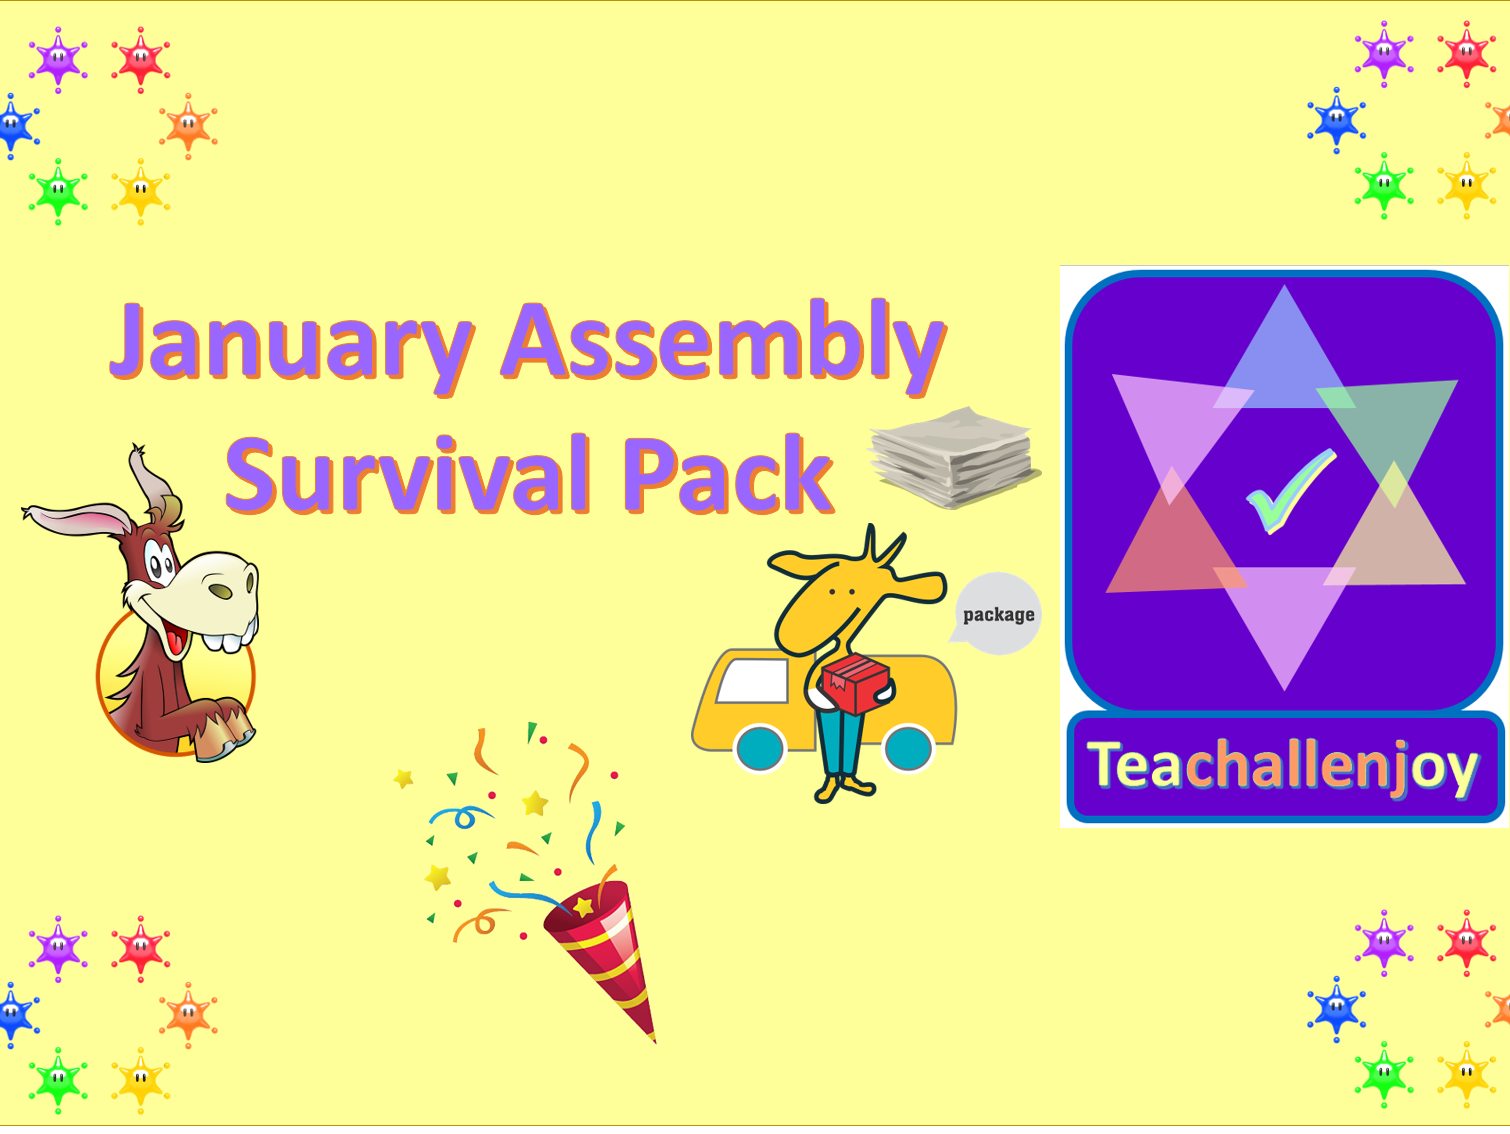 January Assembly Survival Pack